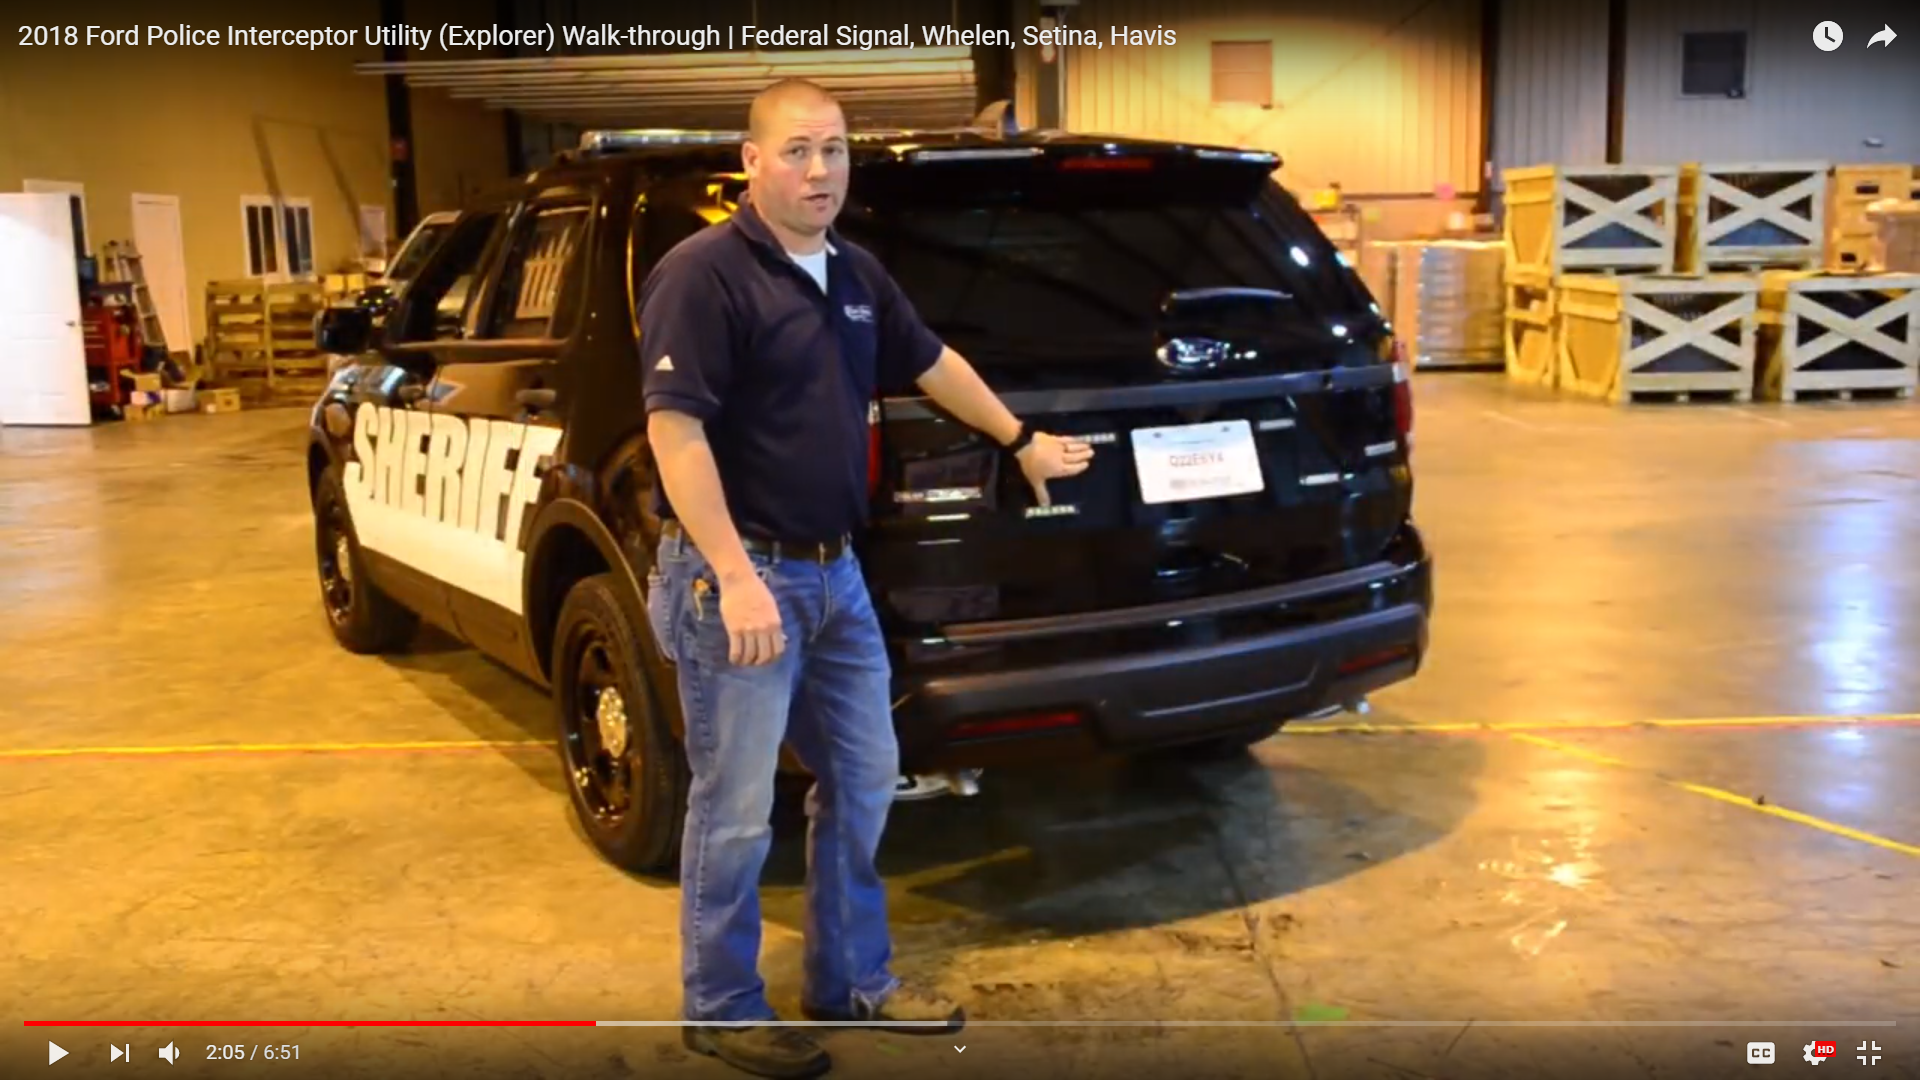 Video Showing Ford Explorer With Light Package